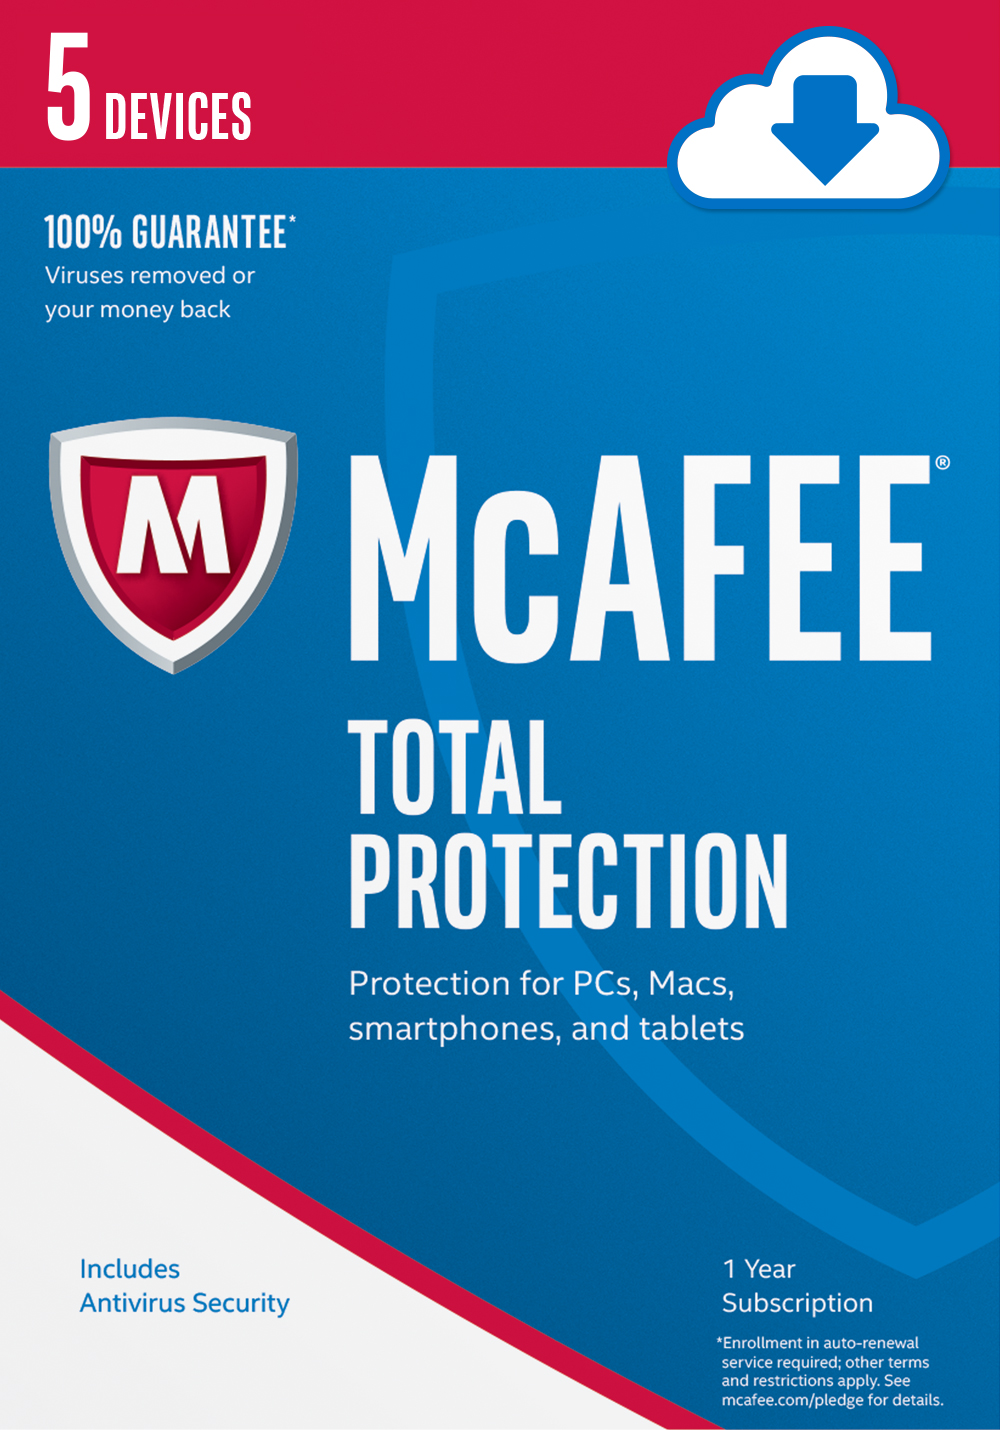 McAfee 2017 Total Protection Devices